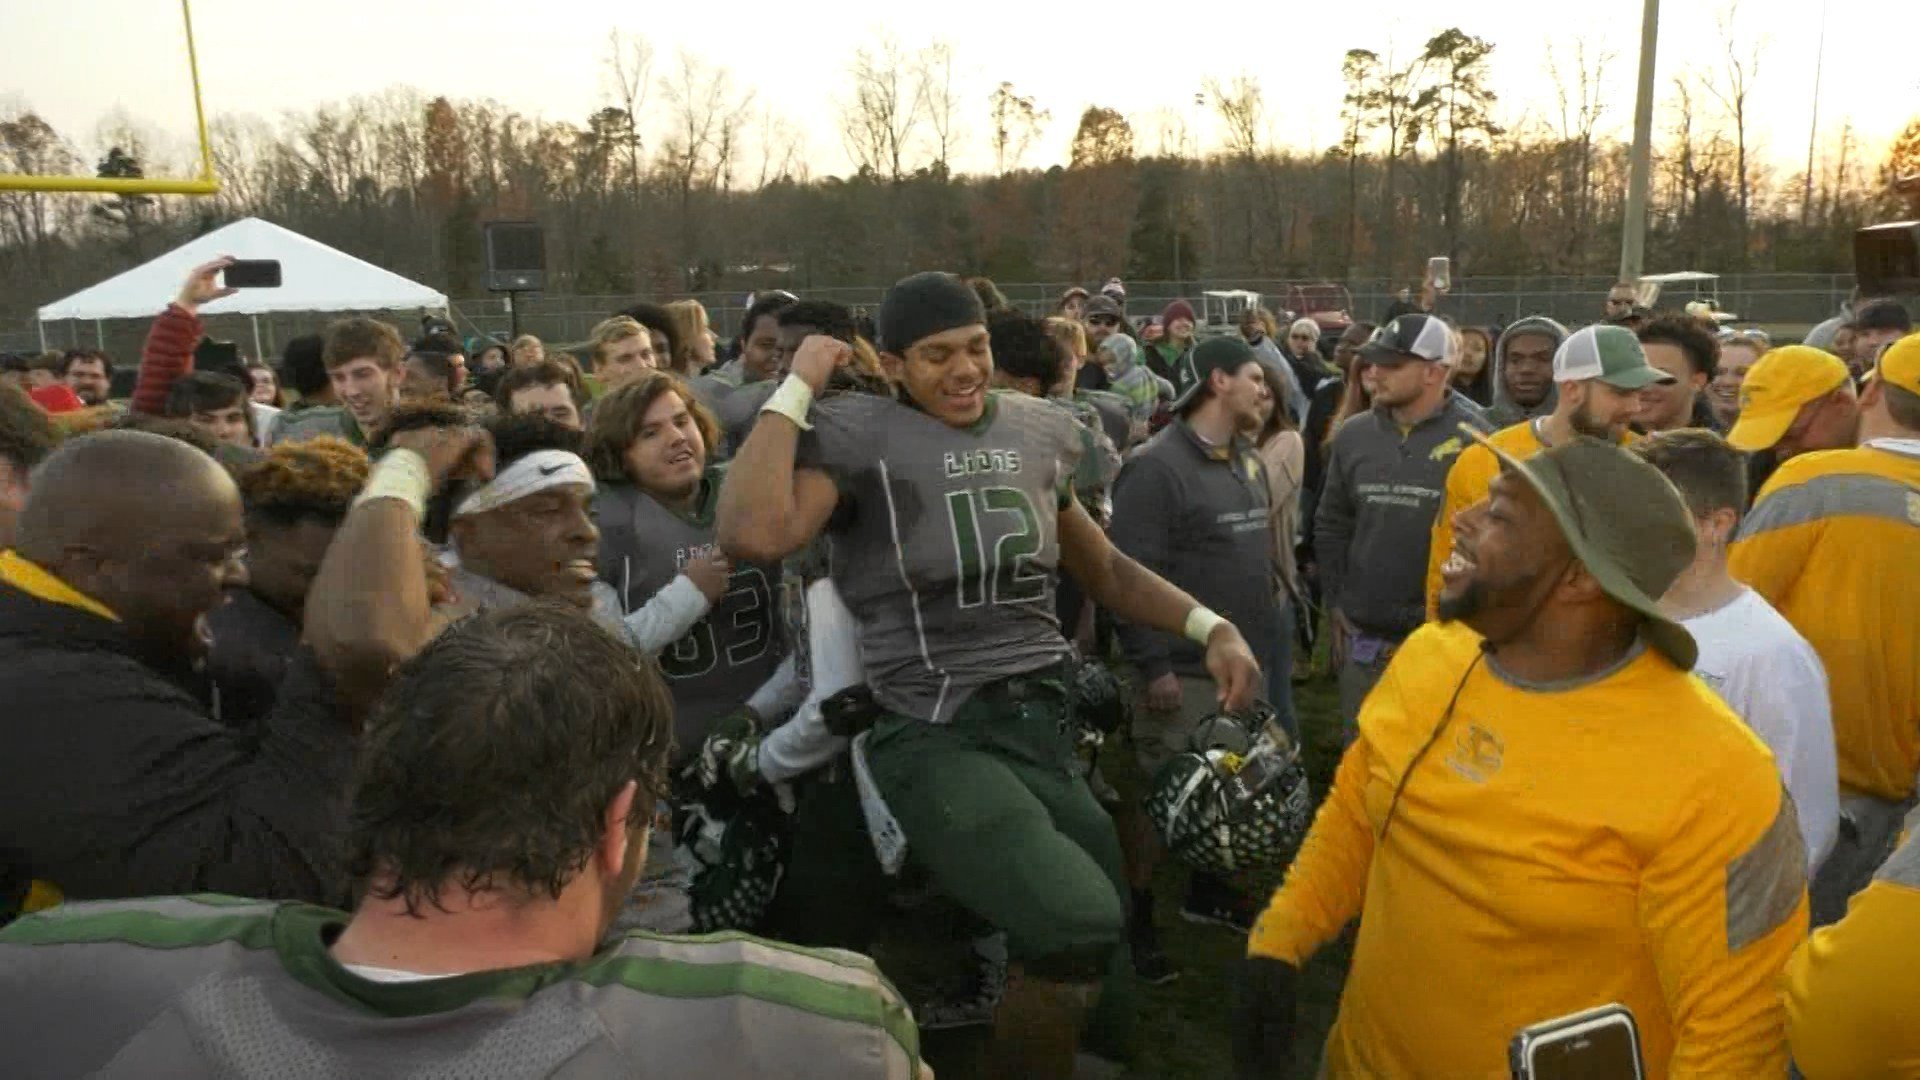 Louisa County celebrates after beating Lafayette in the state semifinals